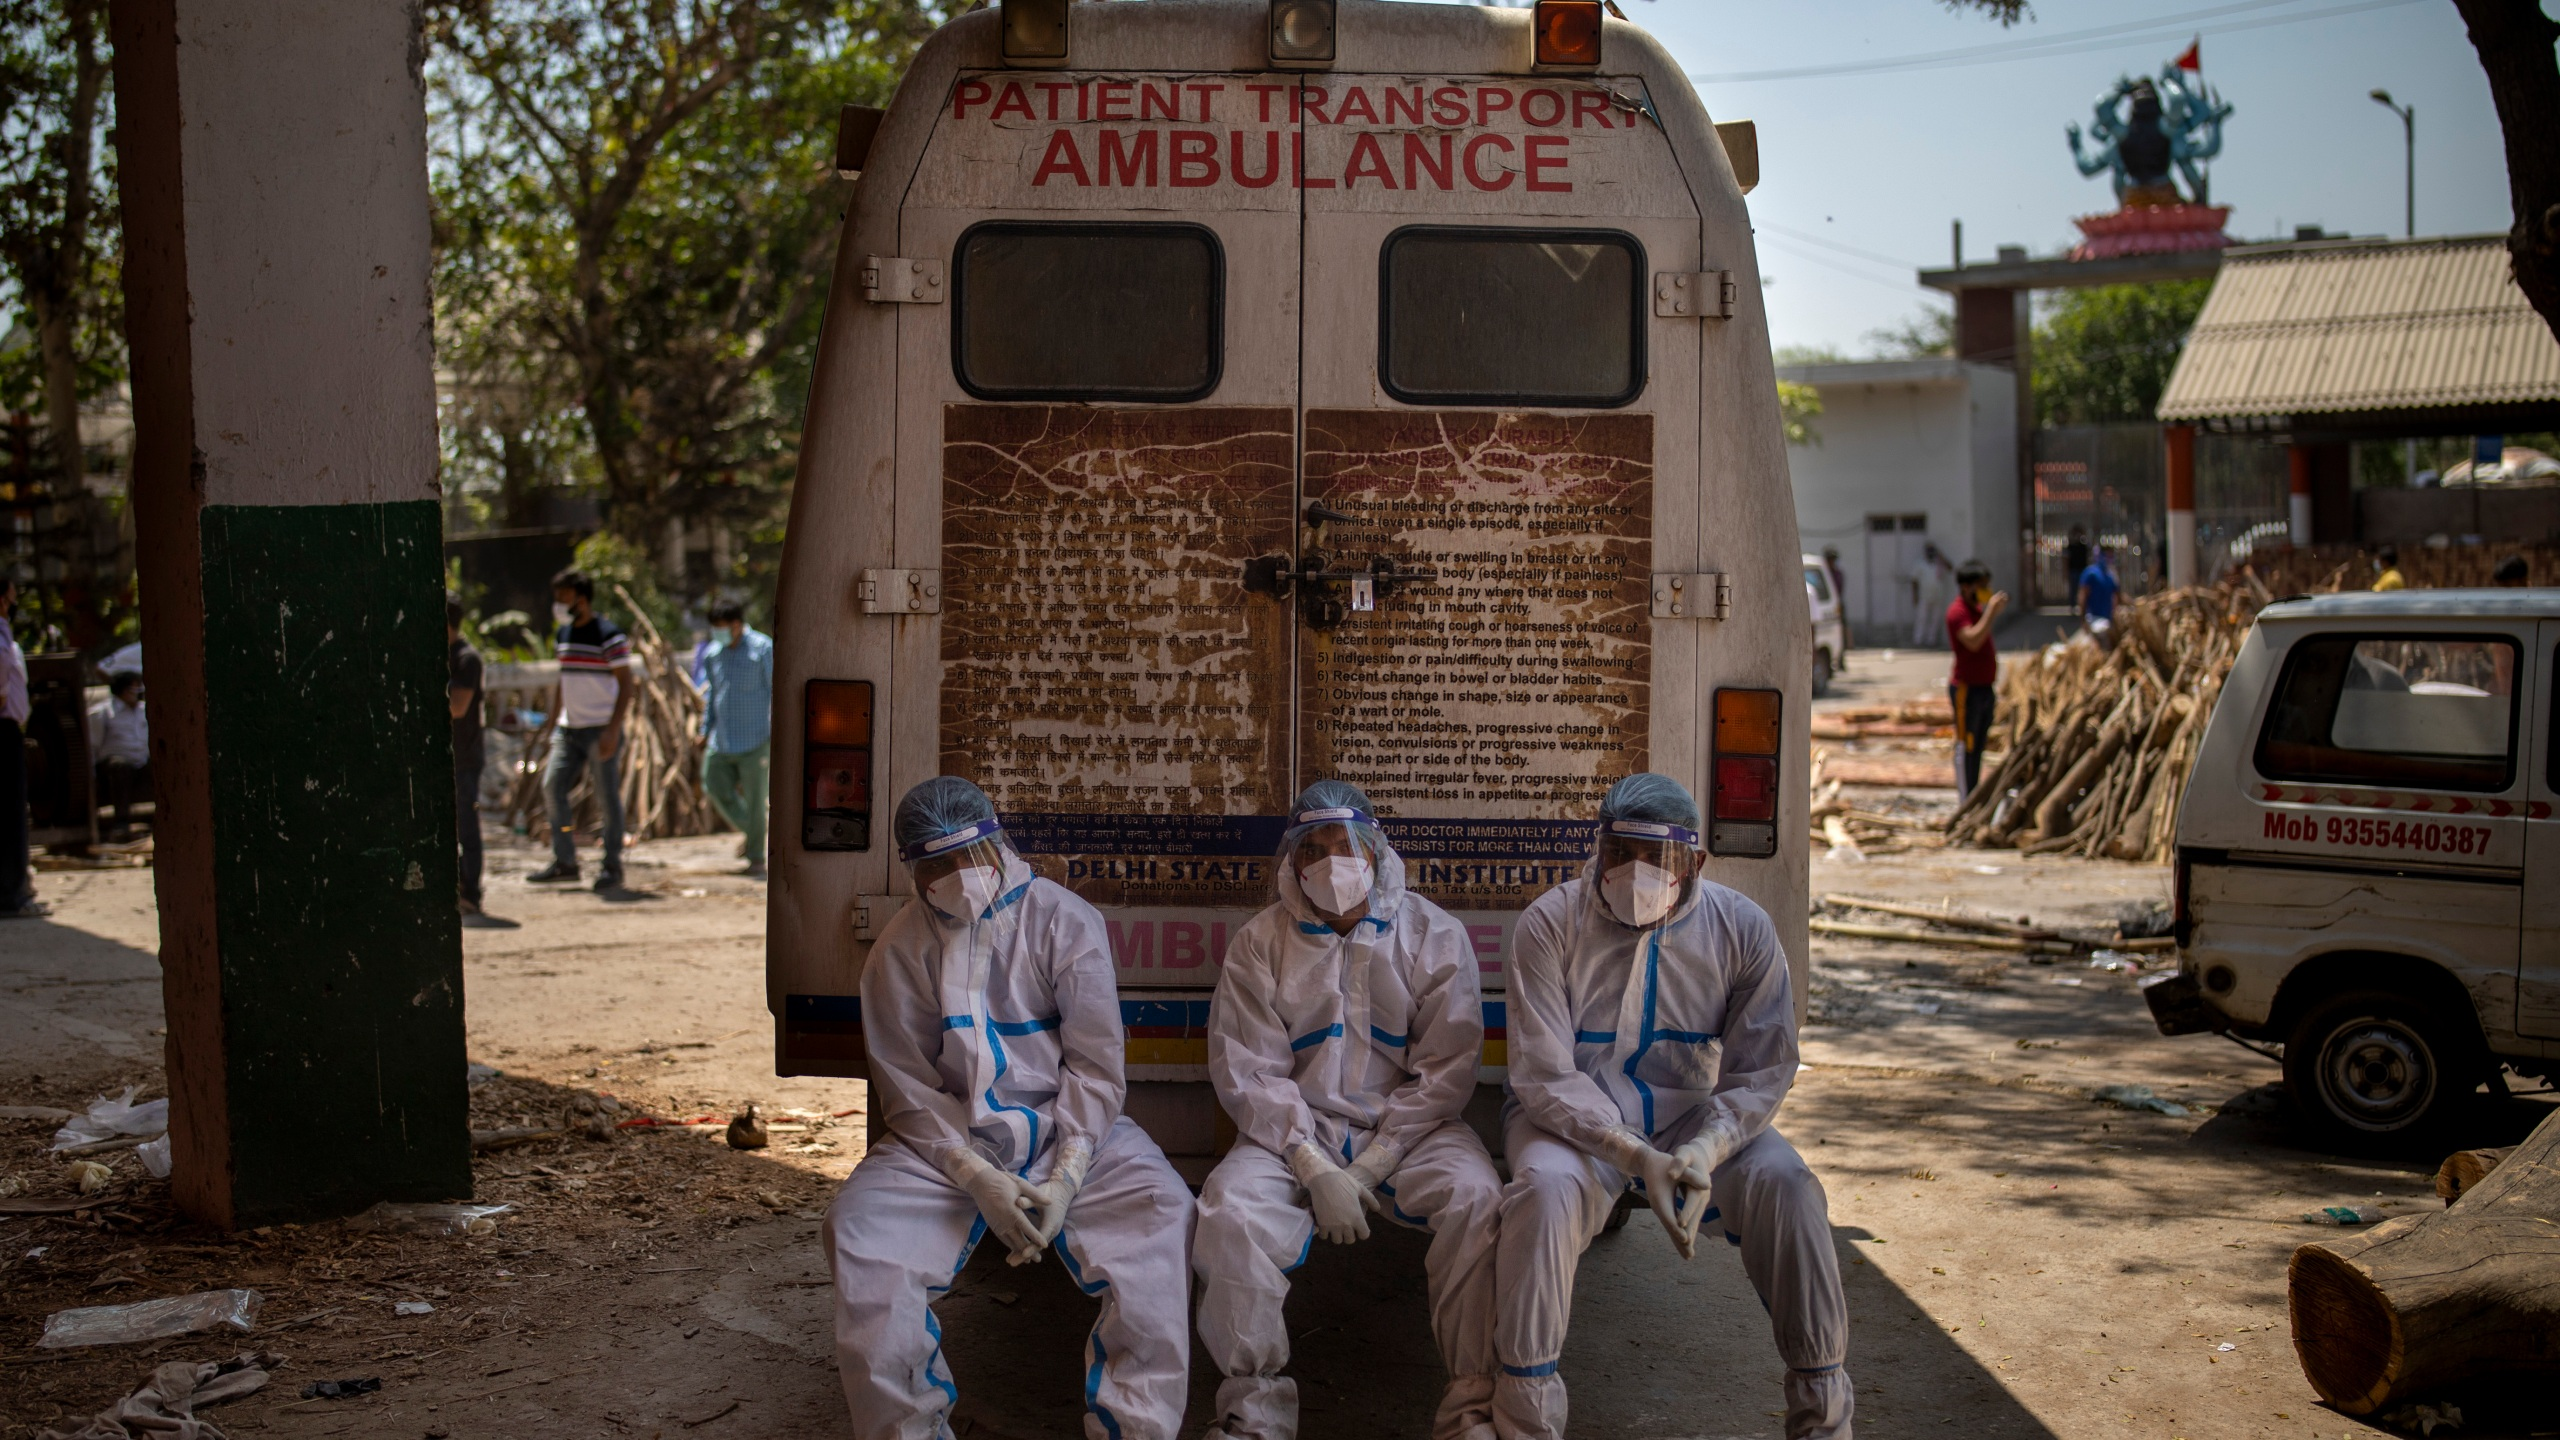 Global COVID-19 deaths hit 4 million amid rush to vaccinate